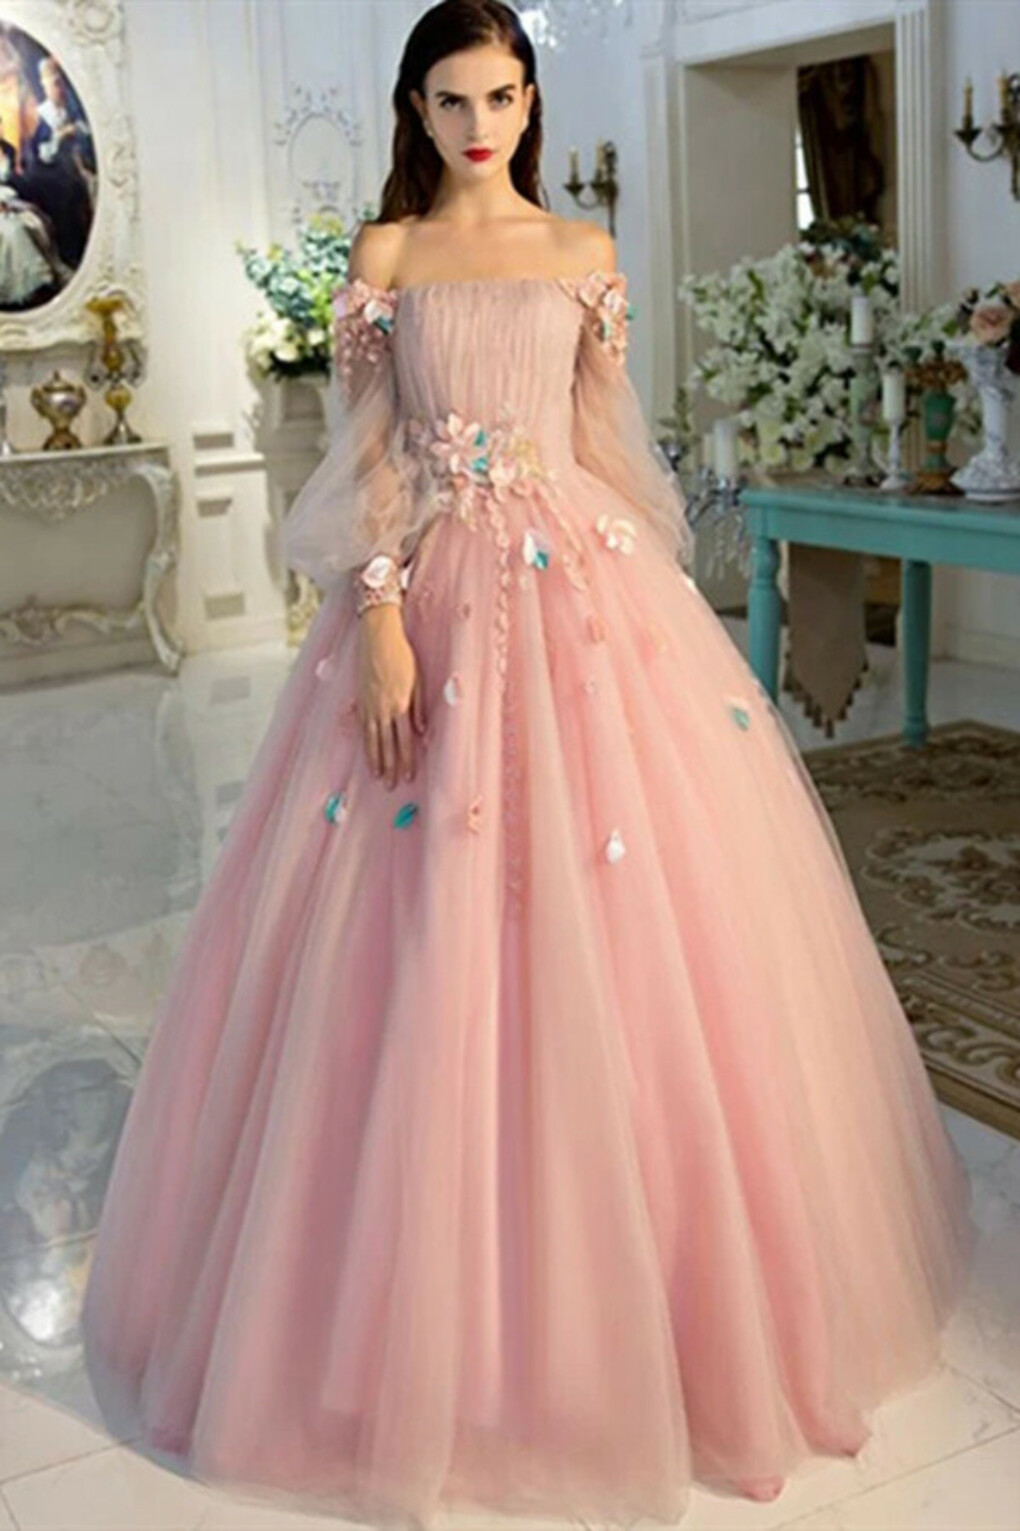 Kateprom Long Sleeve Prom Dresses Pearl Pink Ball Gown Long Floral Fairy Prom Dress KPP1341